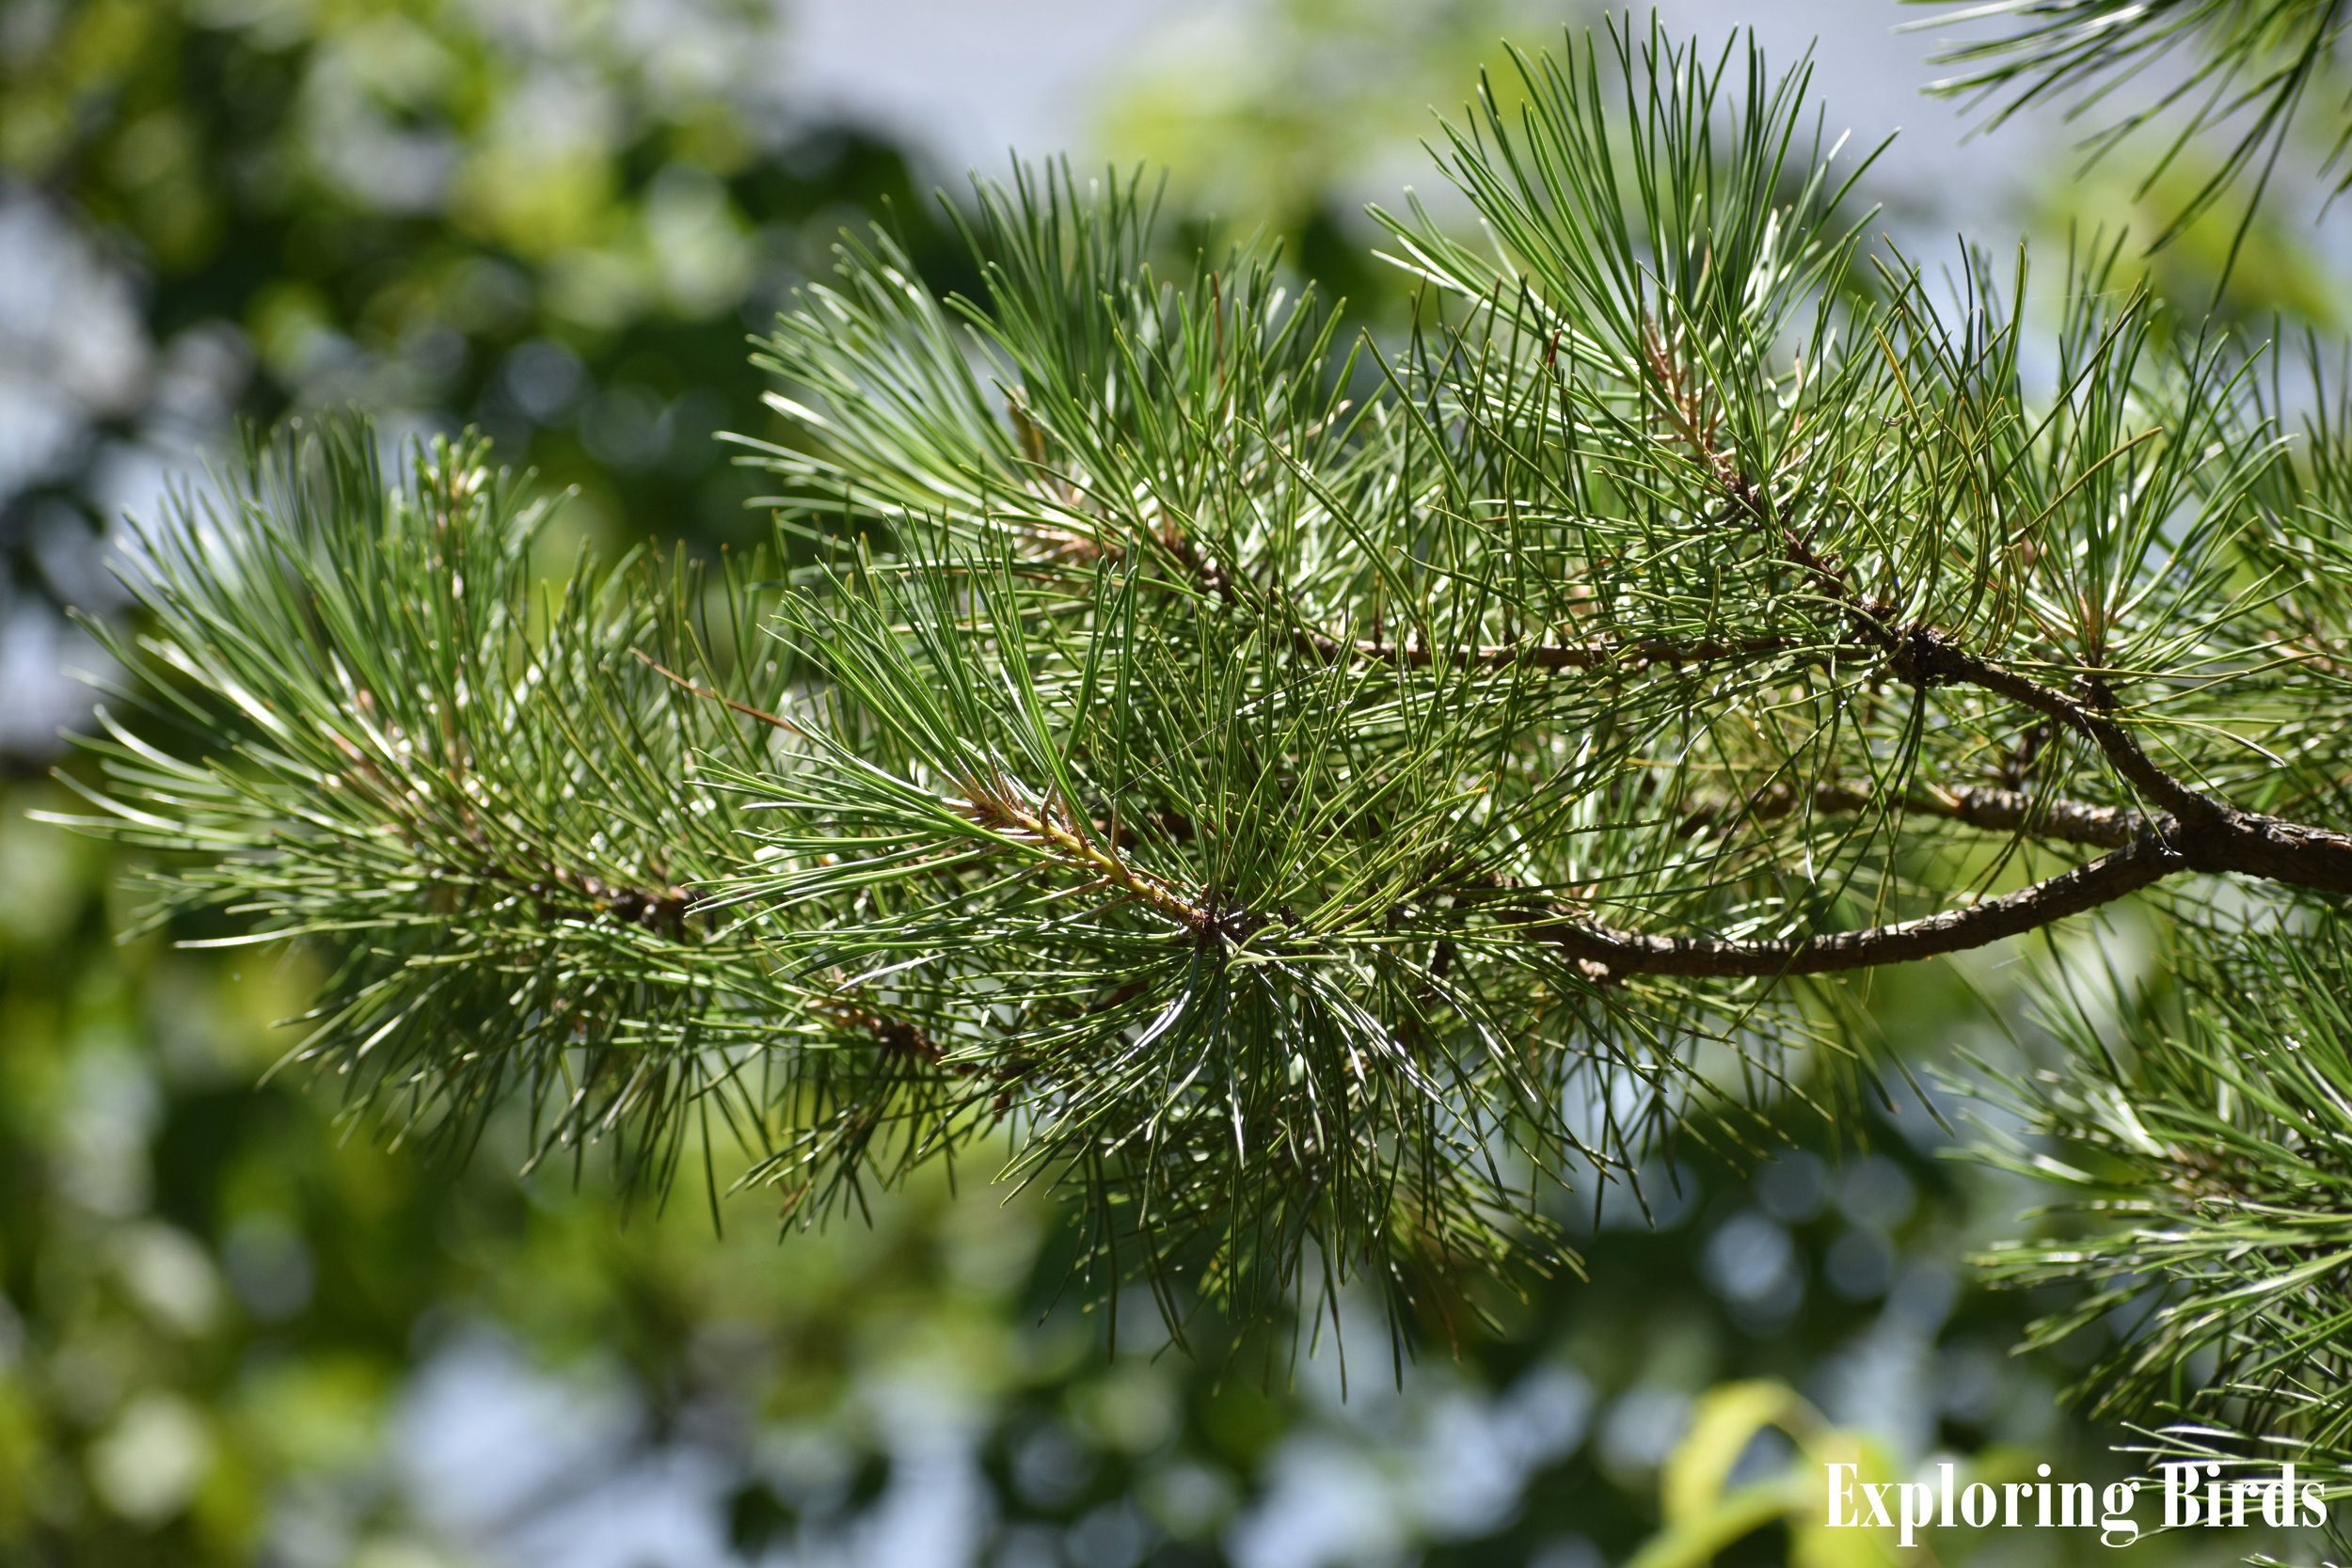 Eastern White Pine is a tree that attracts birds